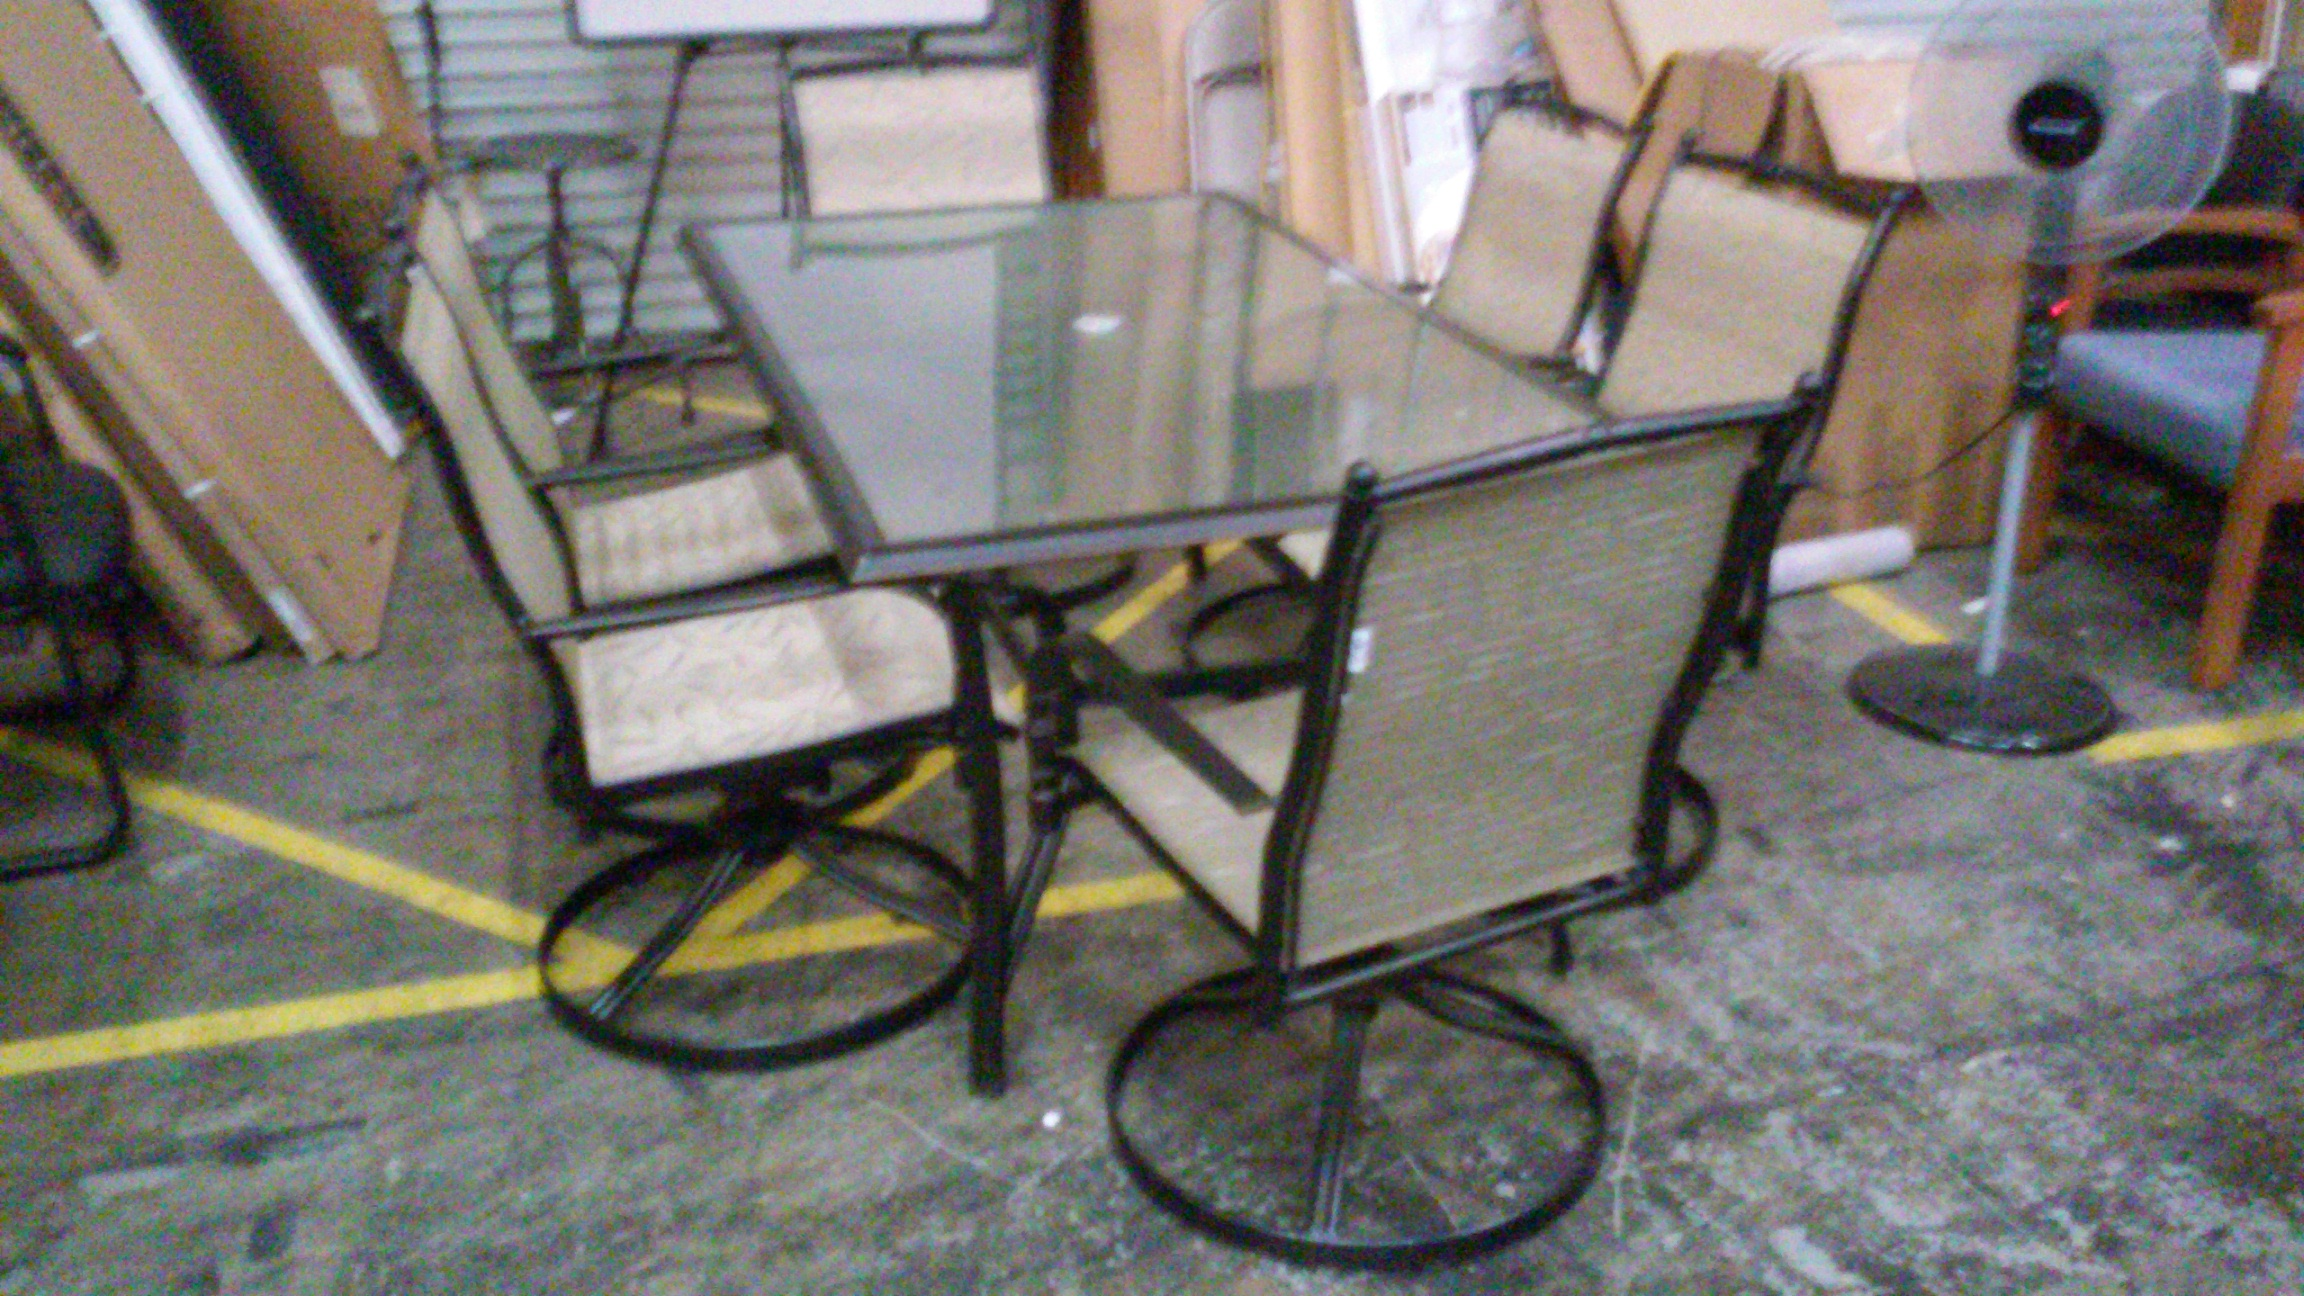 Dining Patio Set With Swivel Chairs 369 99 Altamira 7 Piece 3 300x169 Jpg 2